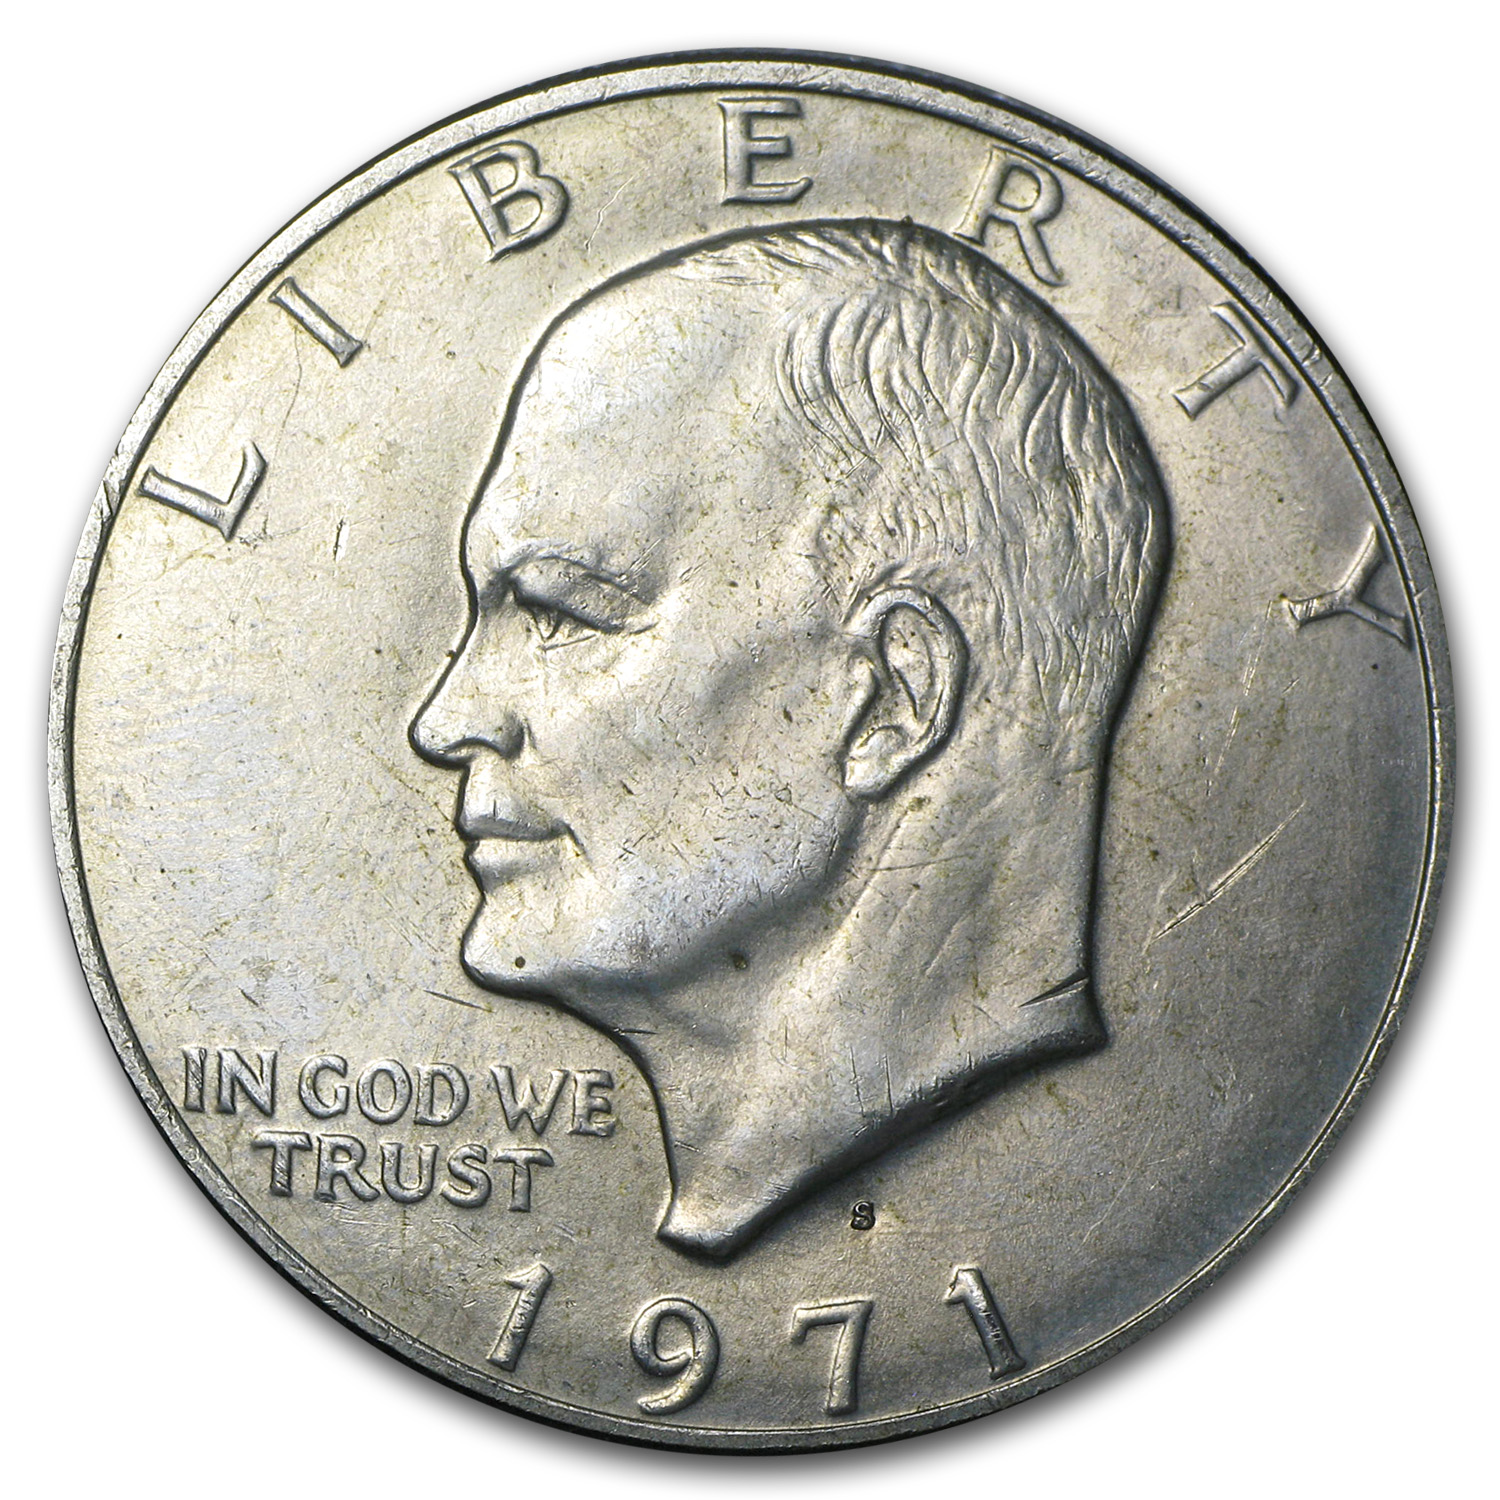 1971-S Eisenhower Dollar 40% Silver BU MS-60 - MS-65